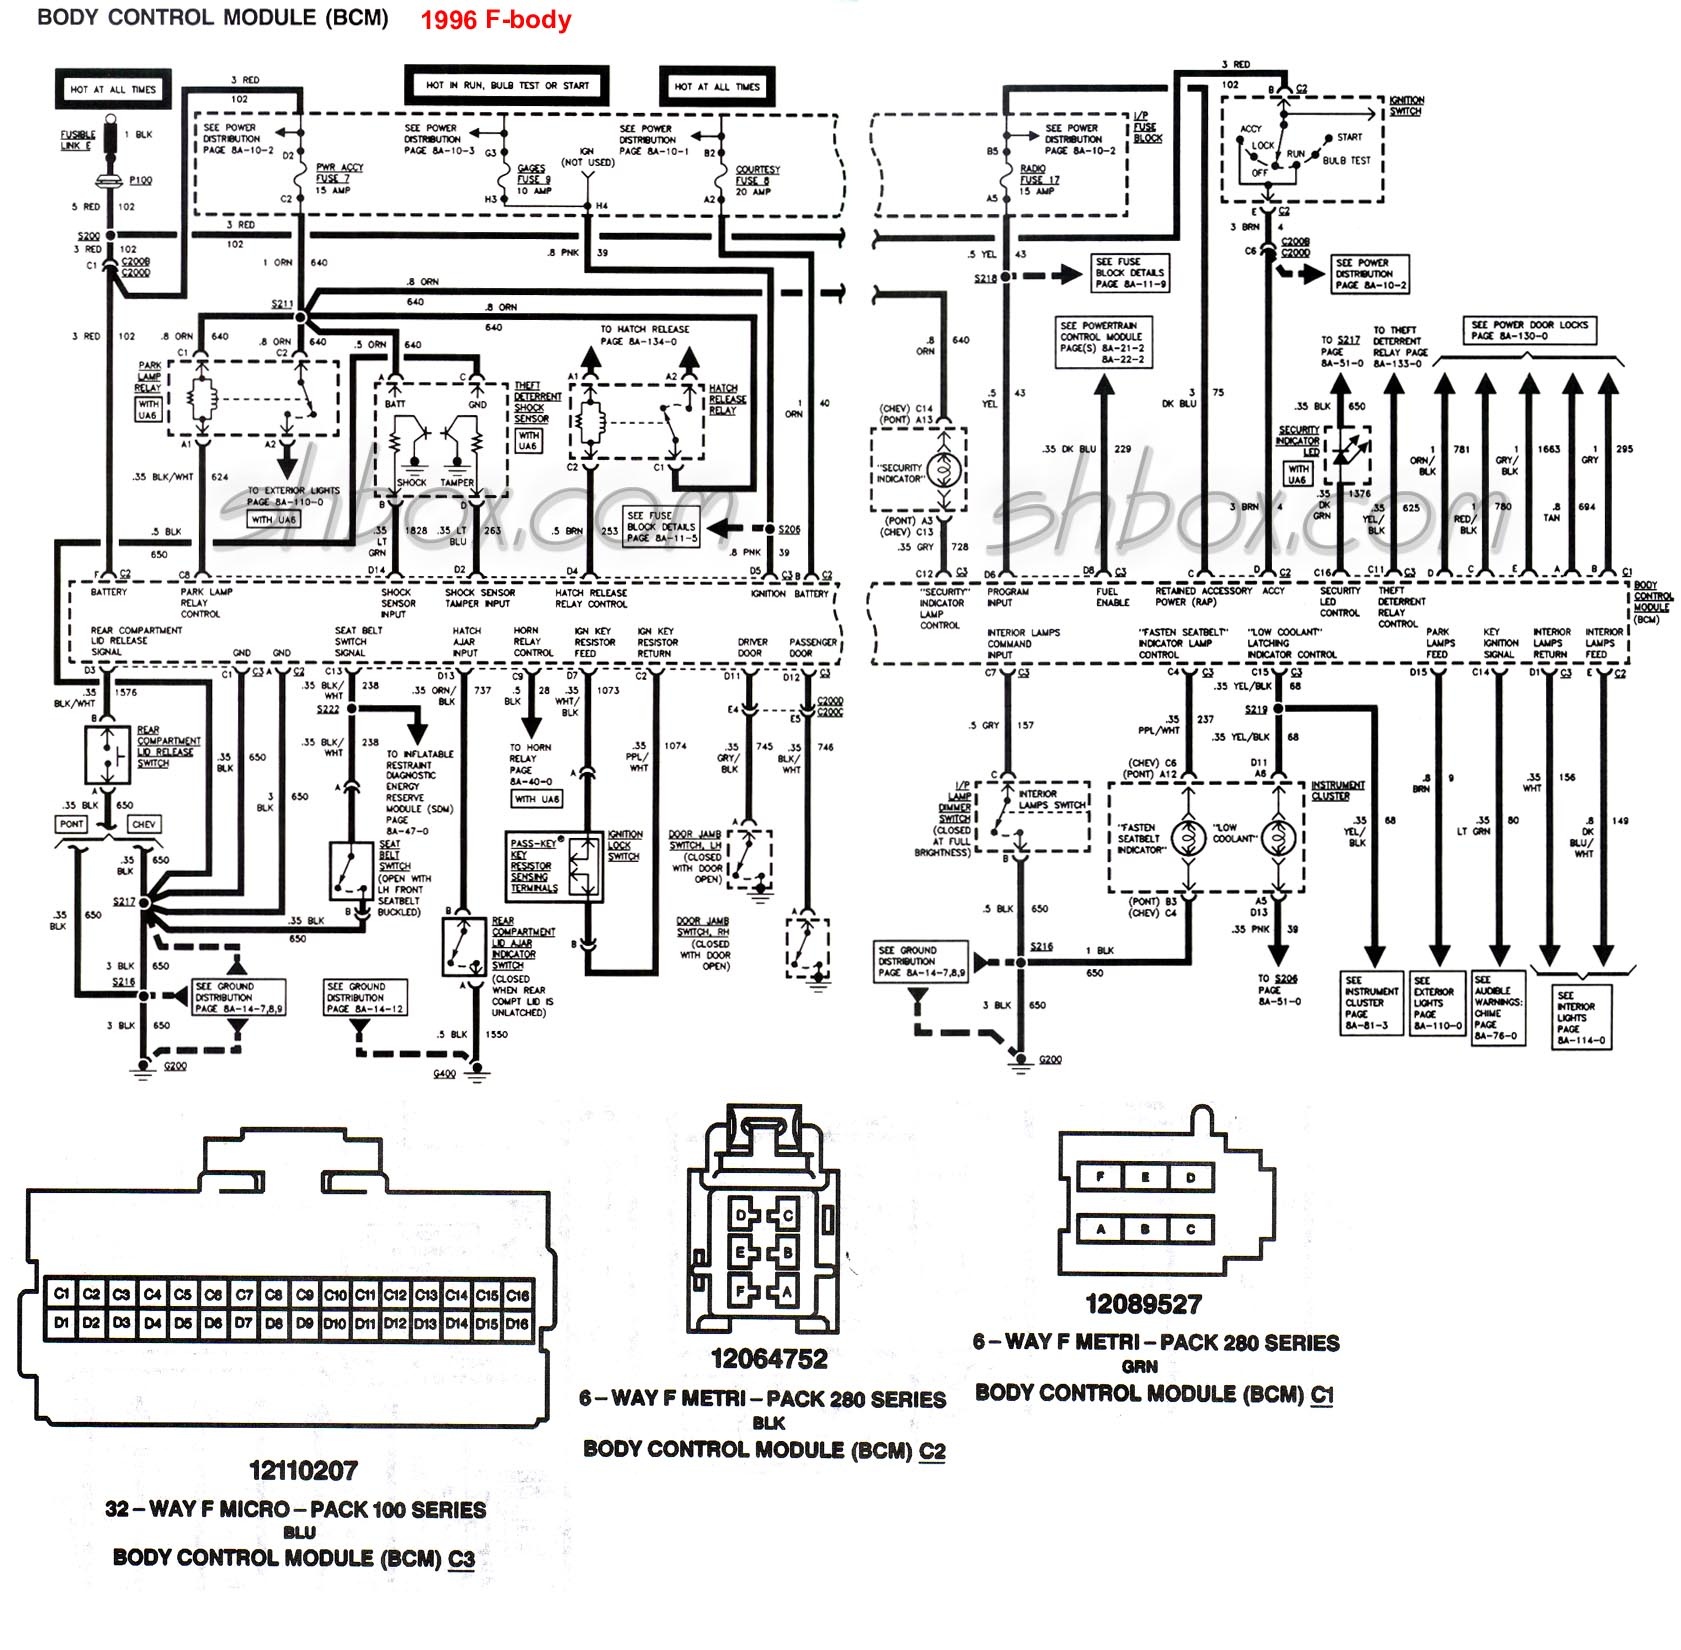 hight resolution of 2010 camaro ss engine wiring diagram wiring diagram centre 2010 camaro ss engine wiring diagram